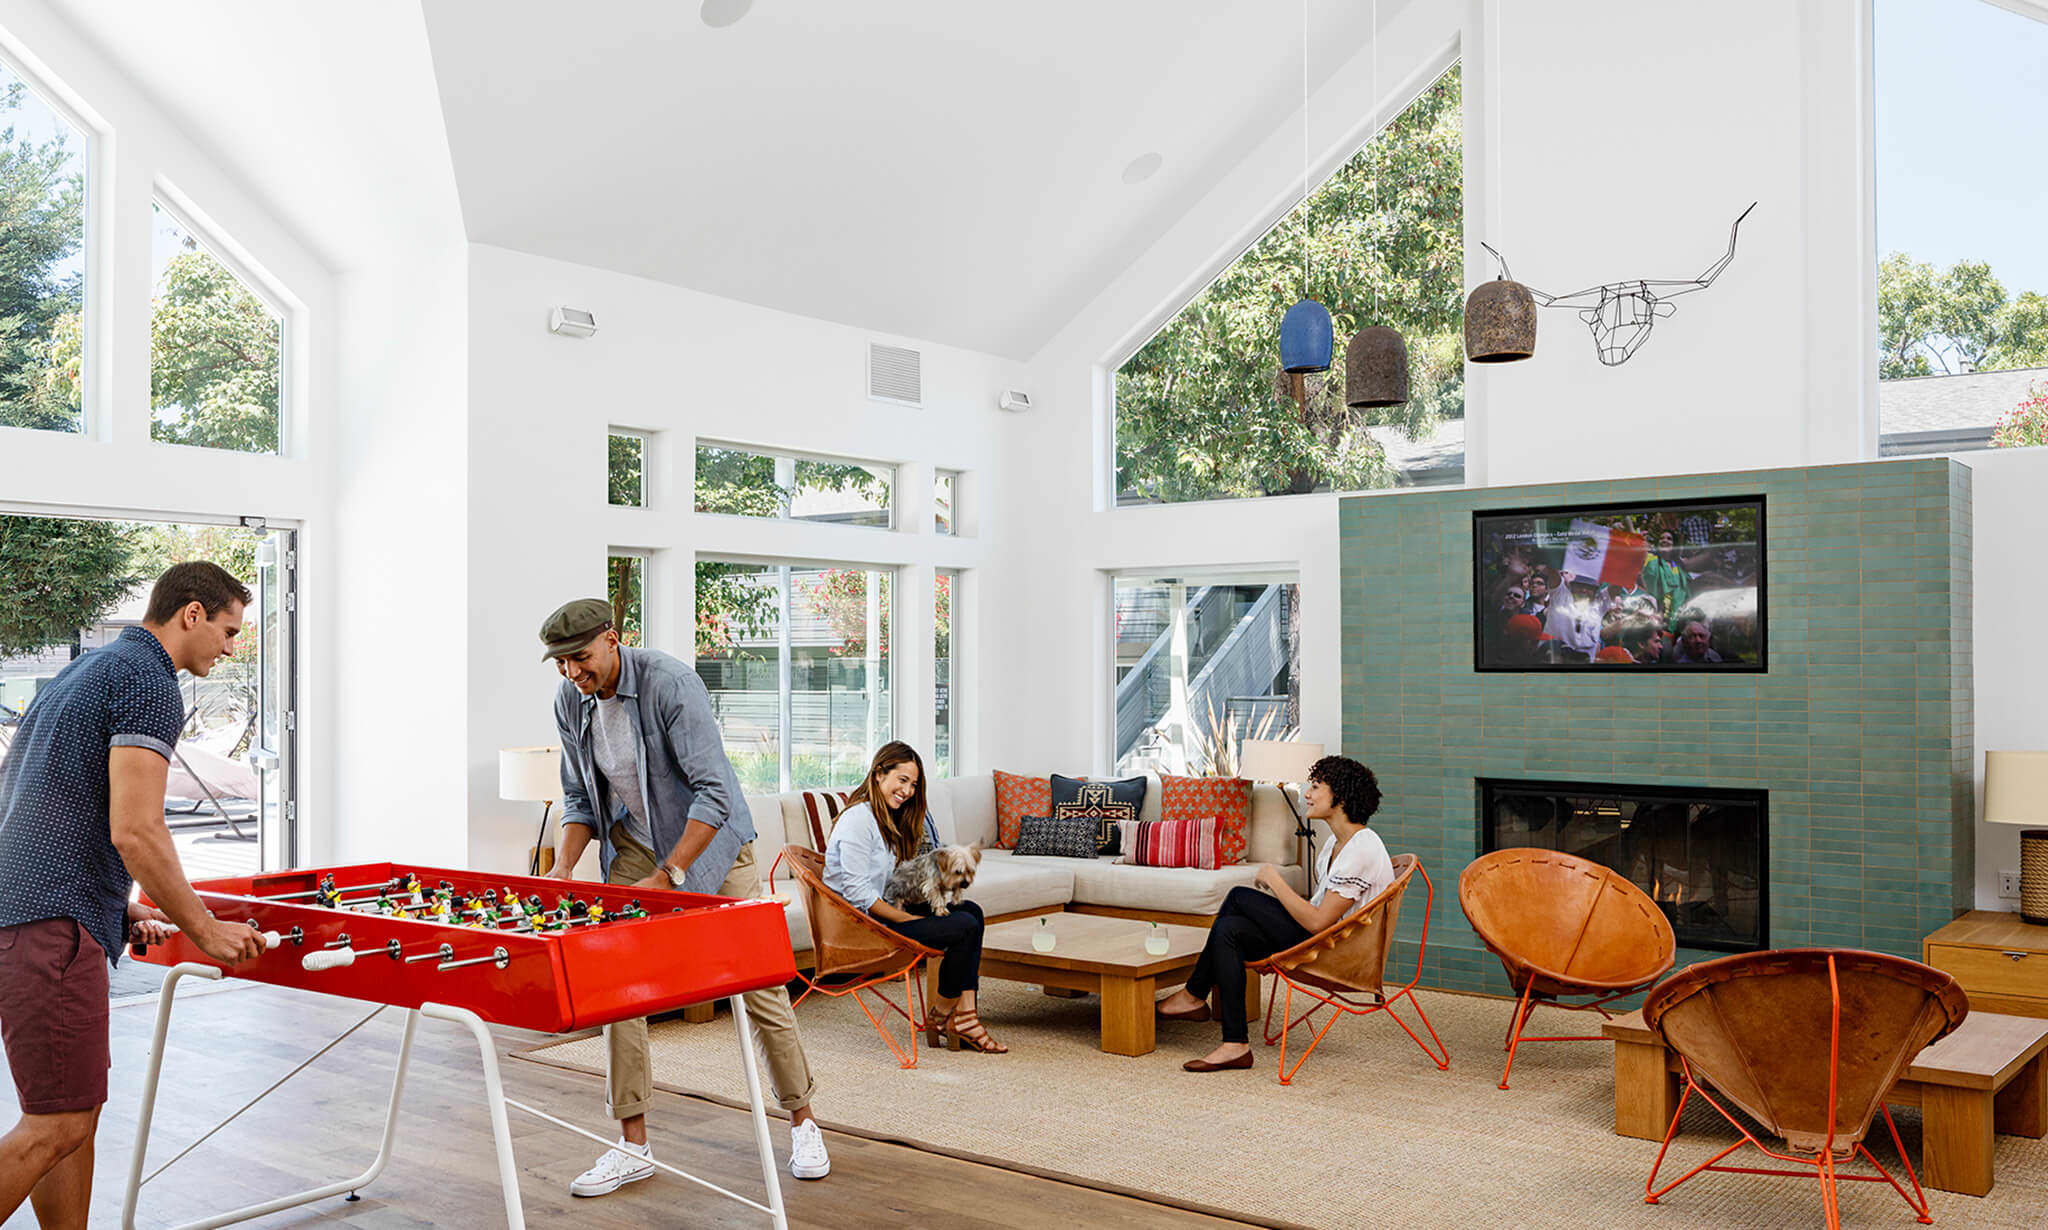 Two people playing Foosball while another two lounge by a fireplace